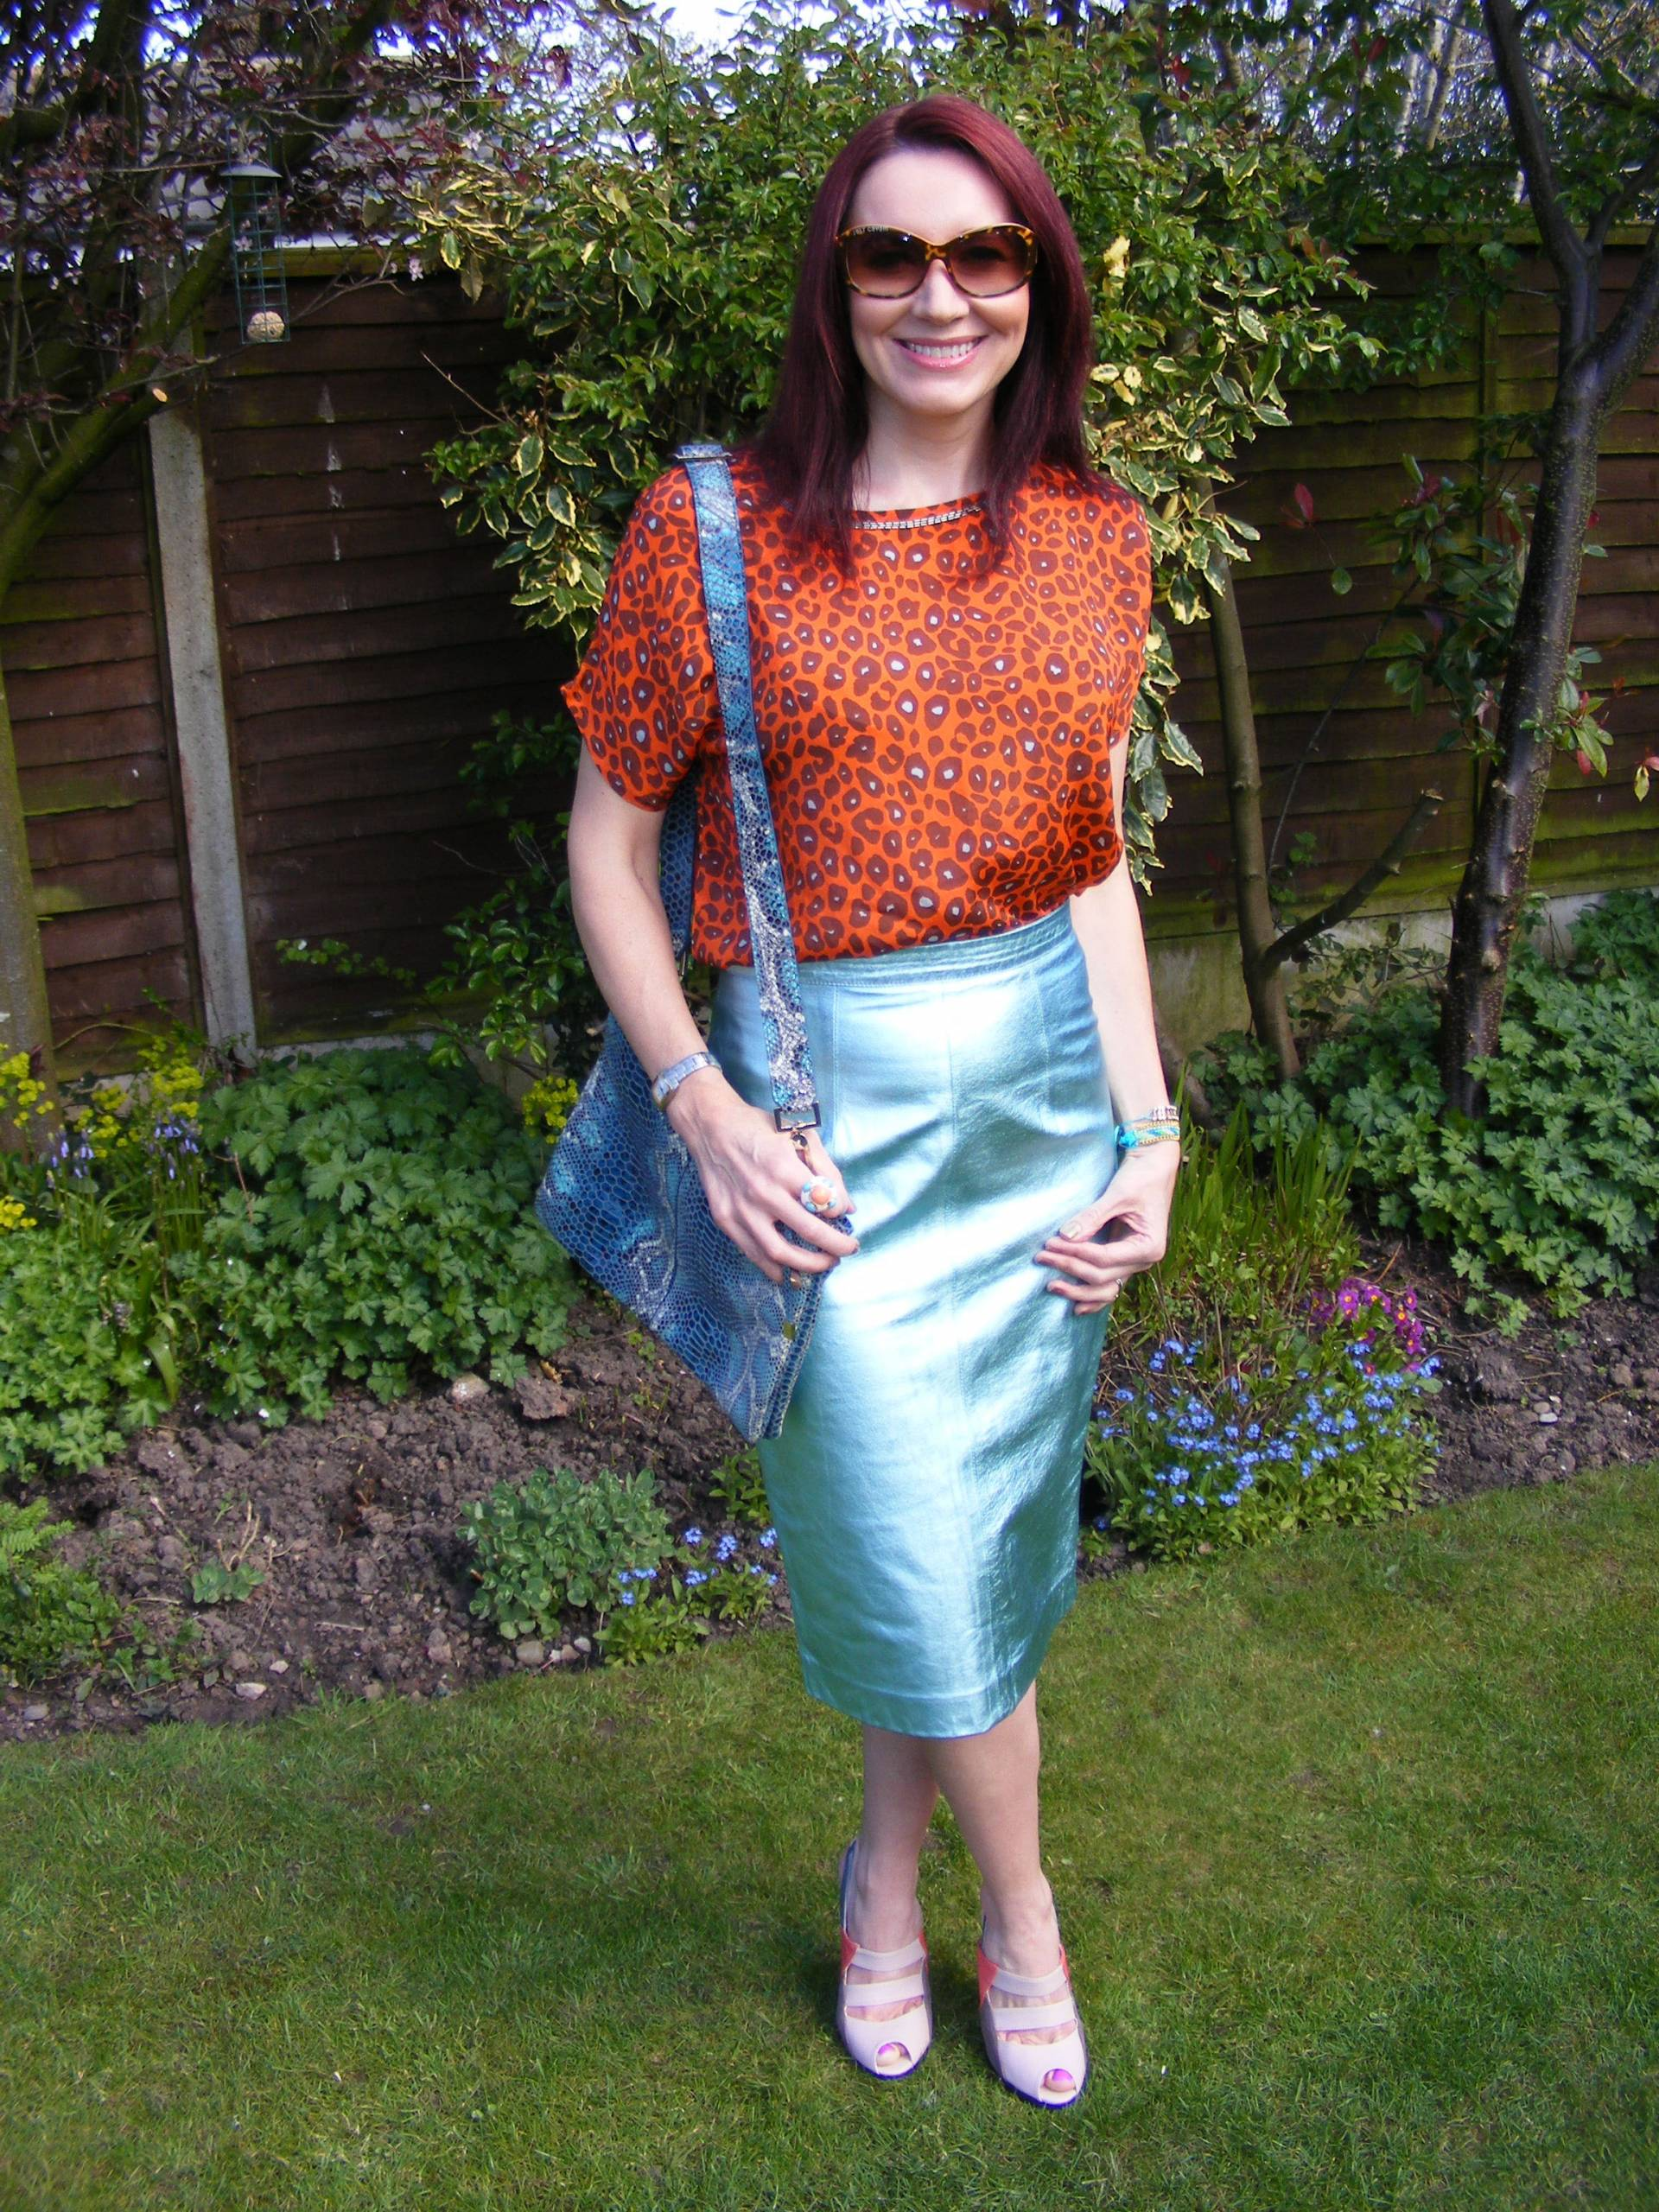 Marks and Spencer Metallic Leather Skirt with Leopard Print Top